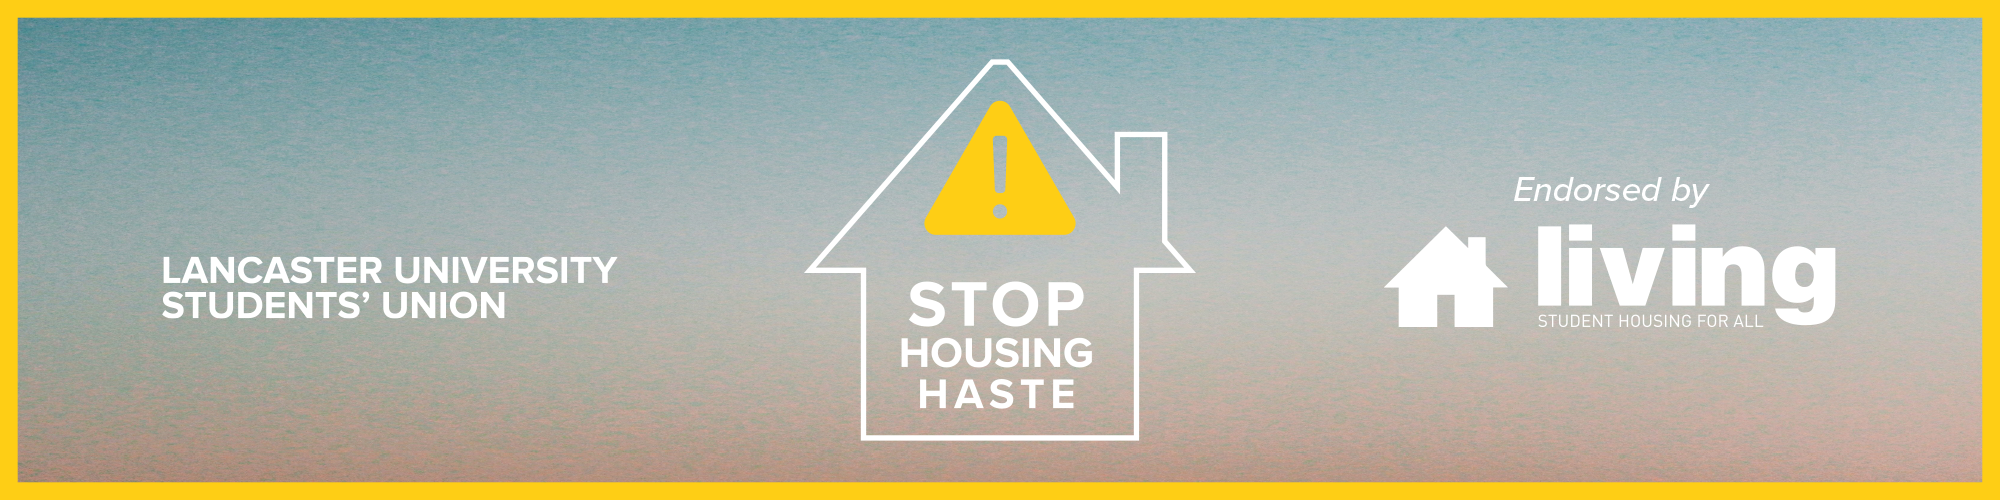 Stop Housing Haste banner image